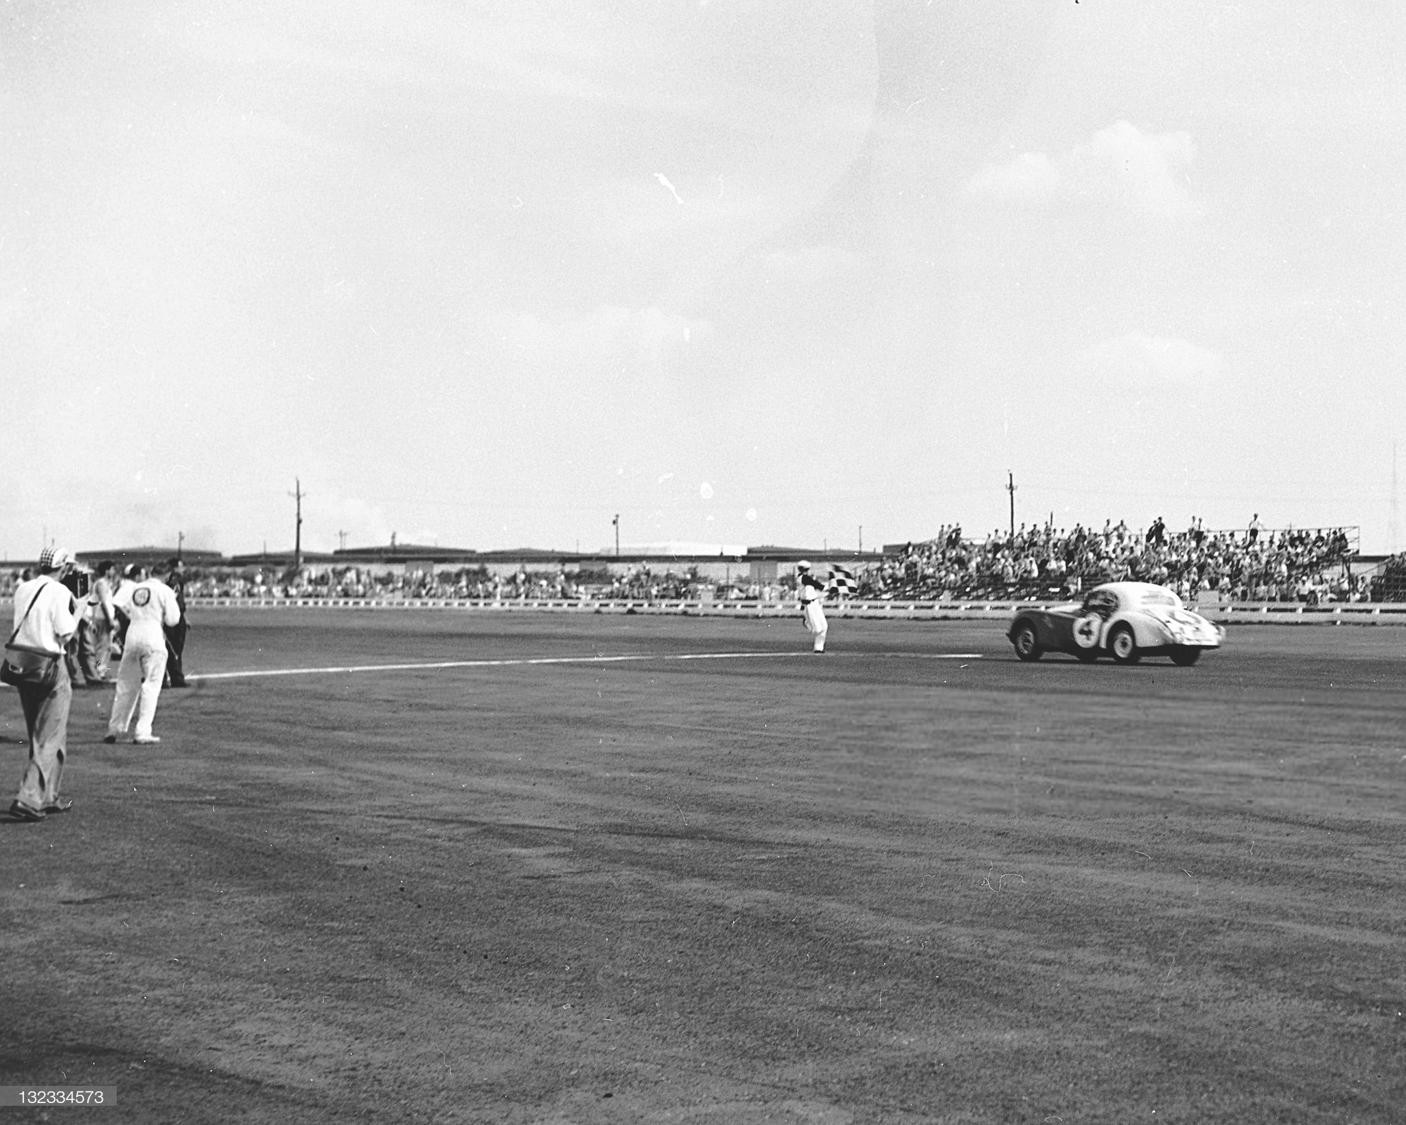 1954#4_June 13, 1954, Al Keller won @ Linden Airport